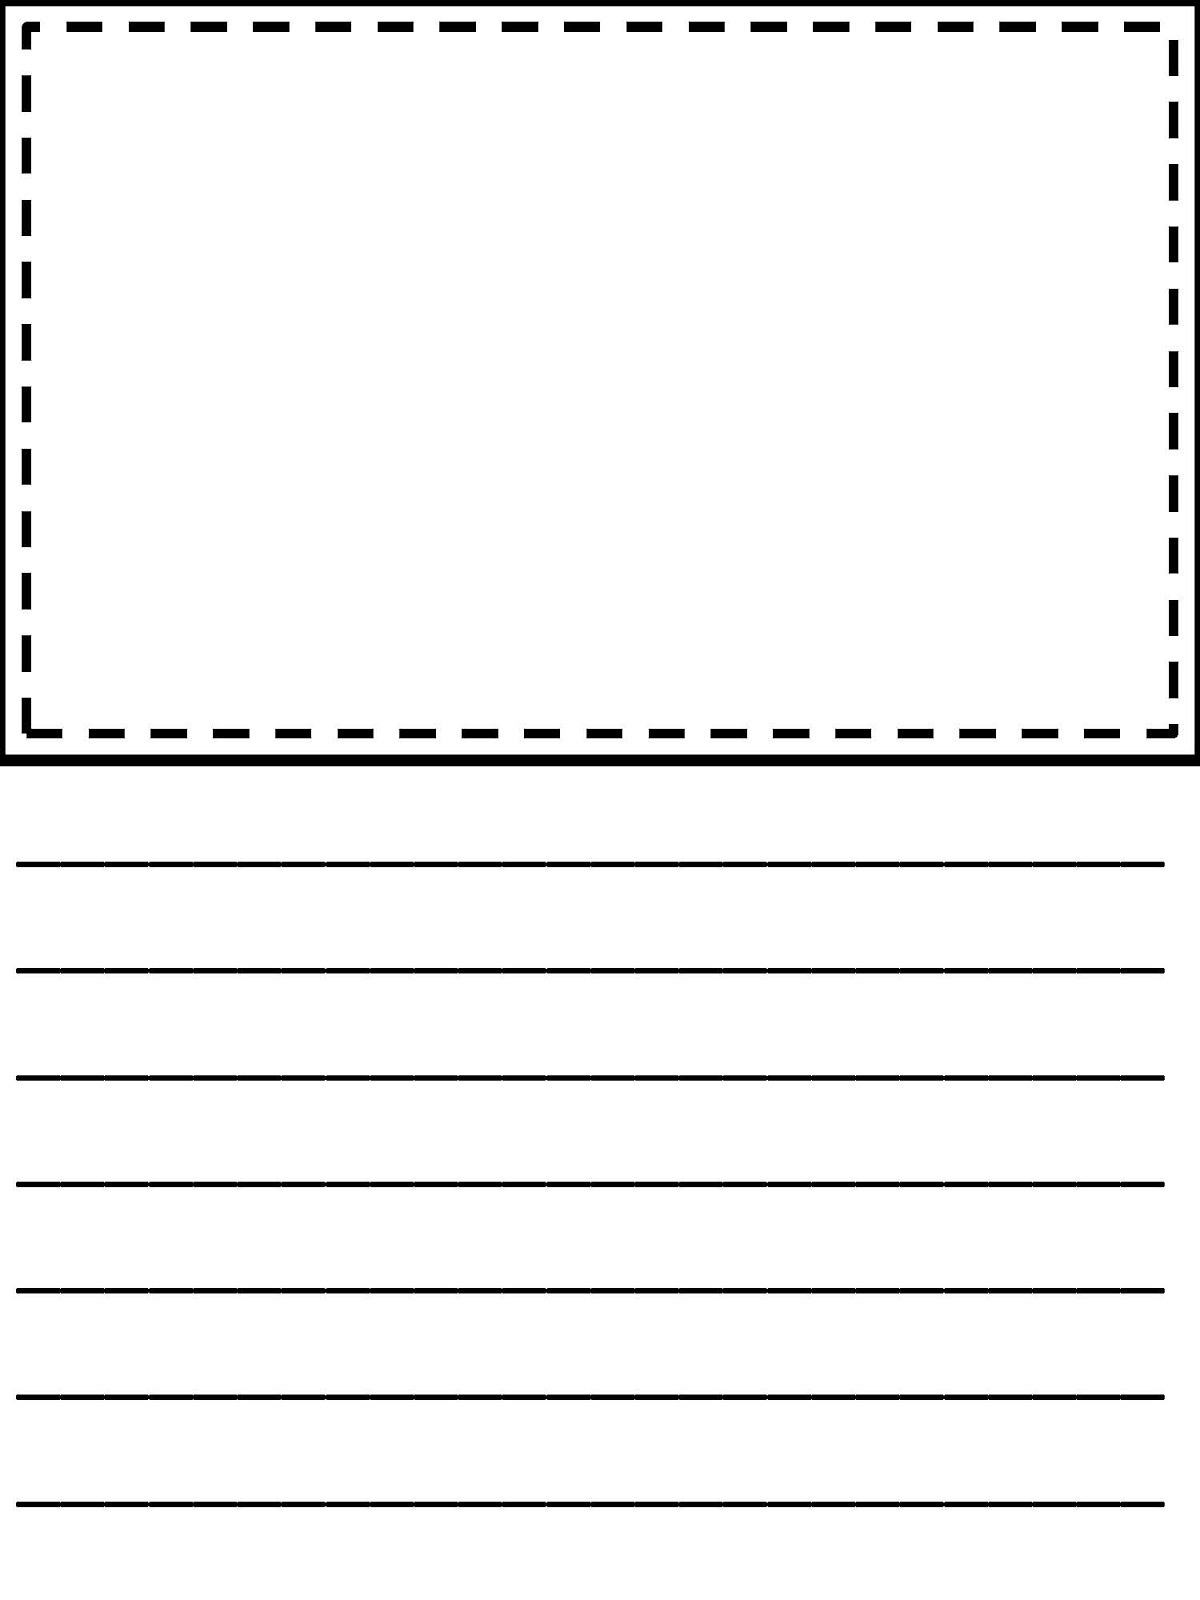 lined essay paper blank line paper printable lined paper jpg and pdf templates lined paper drawing box format